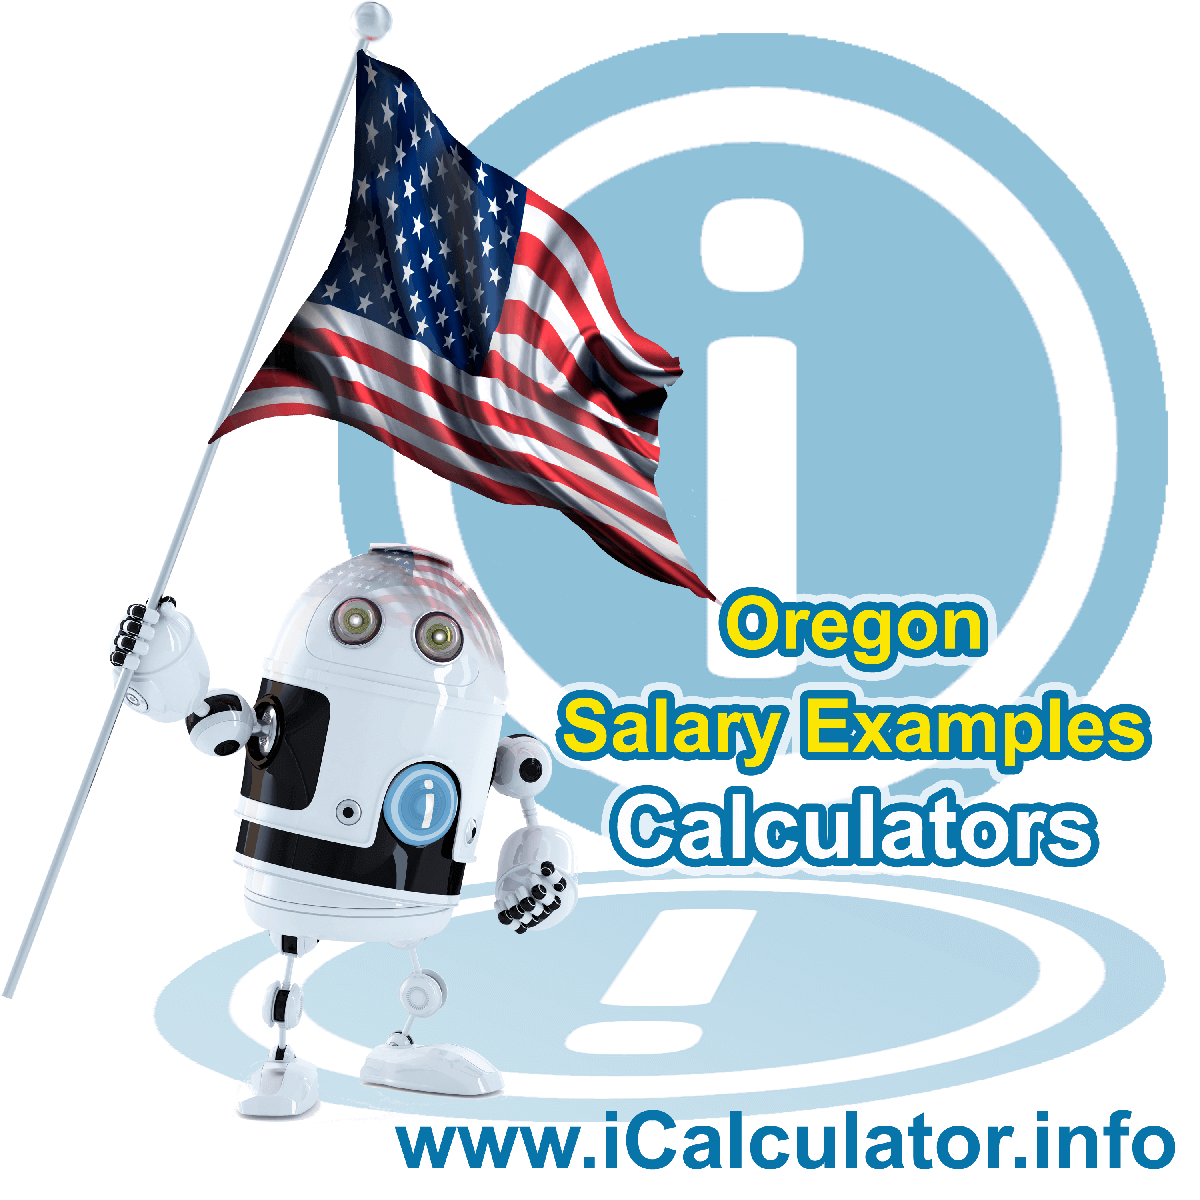 Oregon Salary Example for $280.00 in 2020 | iCalculator | $280.00 salary example for employee and employer paying Oregon State tincome taxes. Detailed salary after tax calculation including Oregon State Tax, Federal State Tax, Medicare Deductions, Social Security, Capital Gains and other income tax and salary deductions complete with supporting Oregon state tax tables